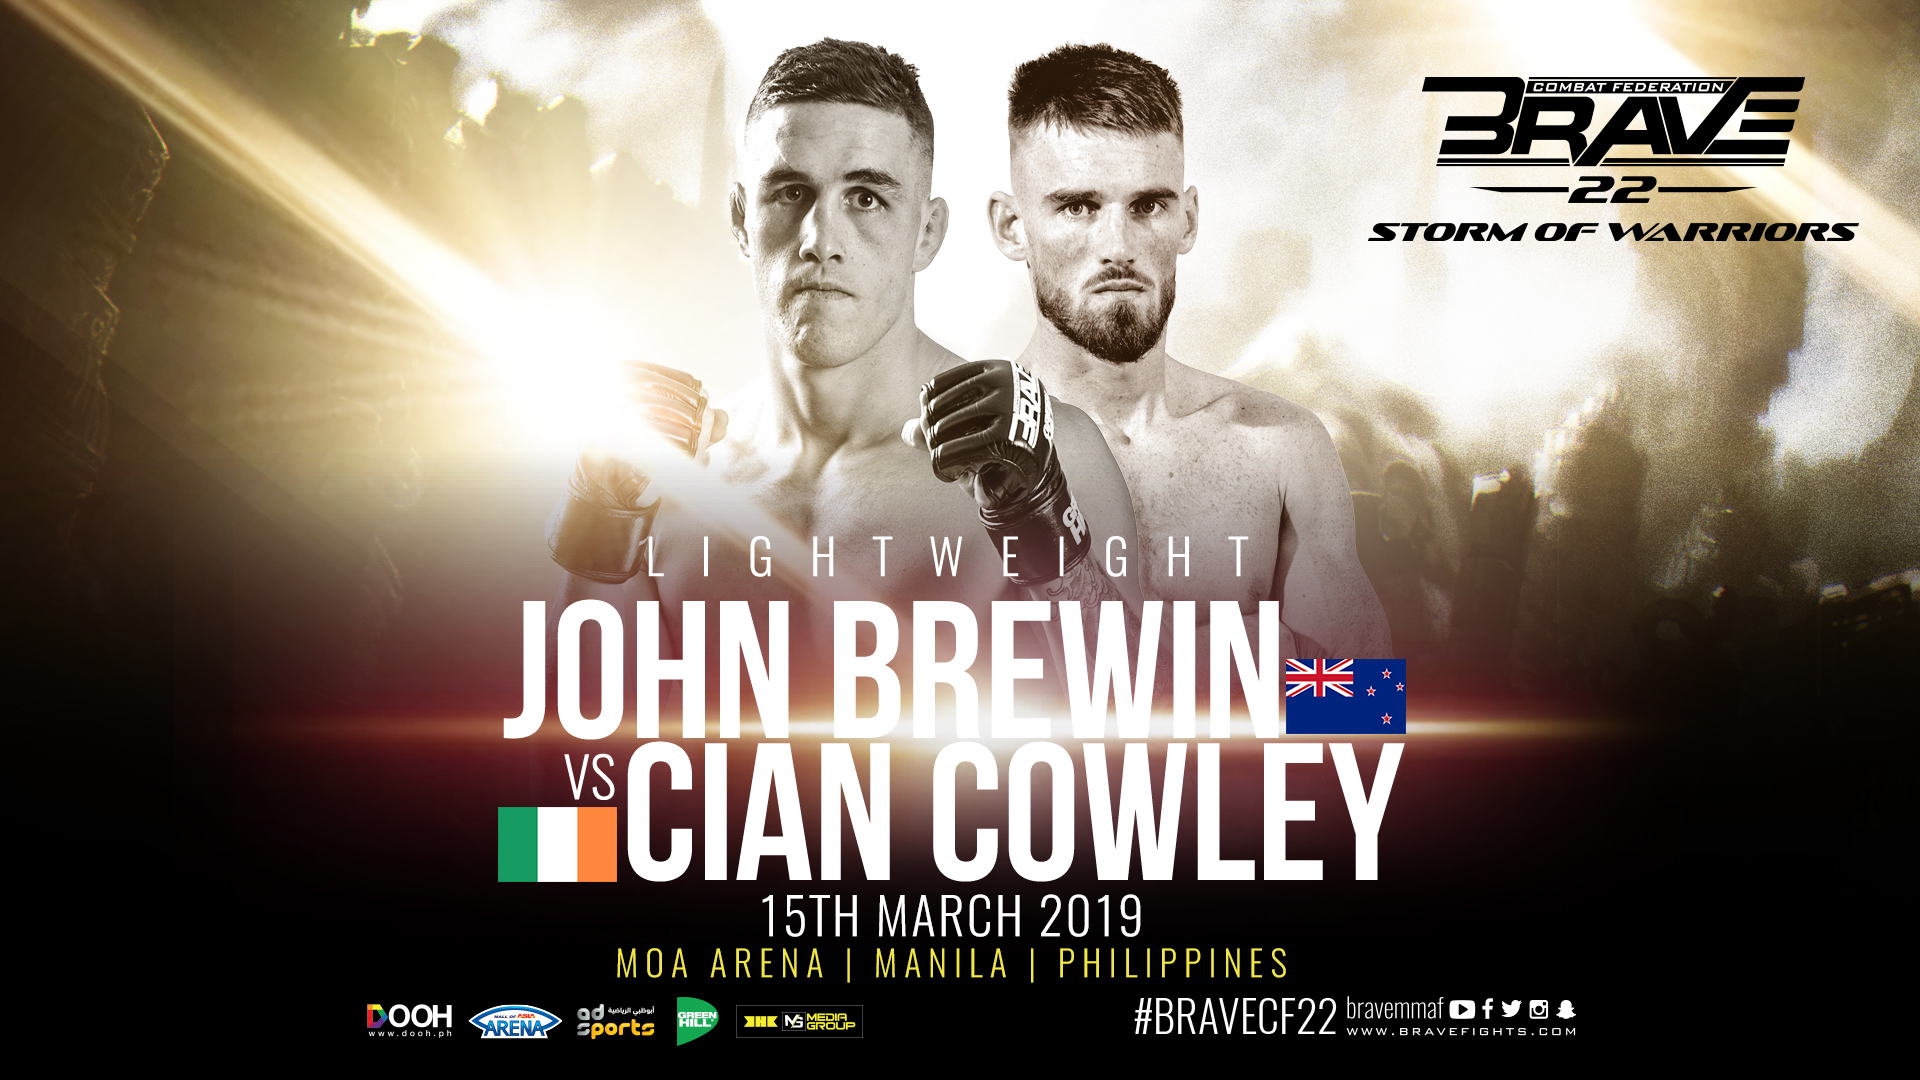 Cian Cowley returns against John Brewin at Brave 22 -